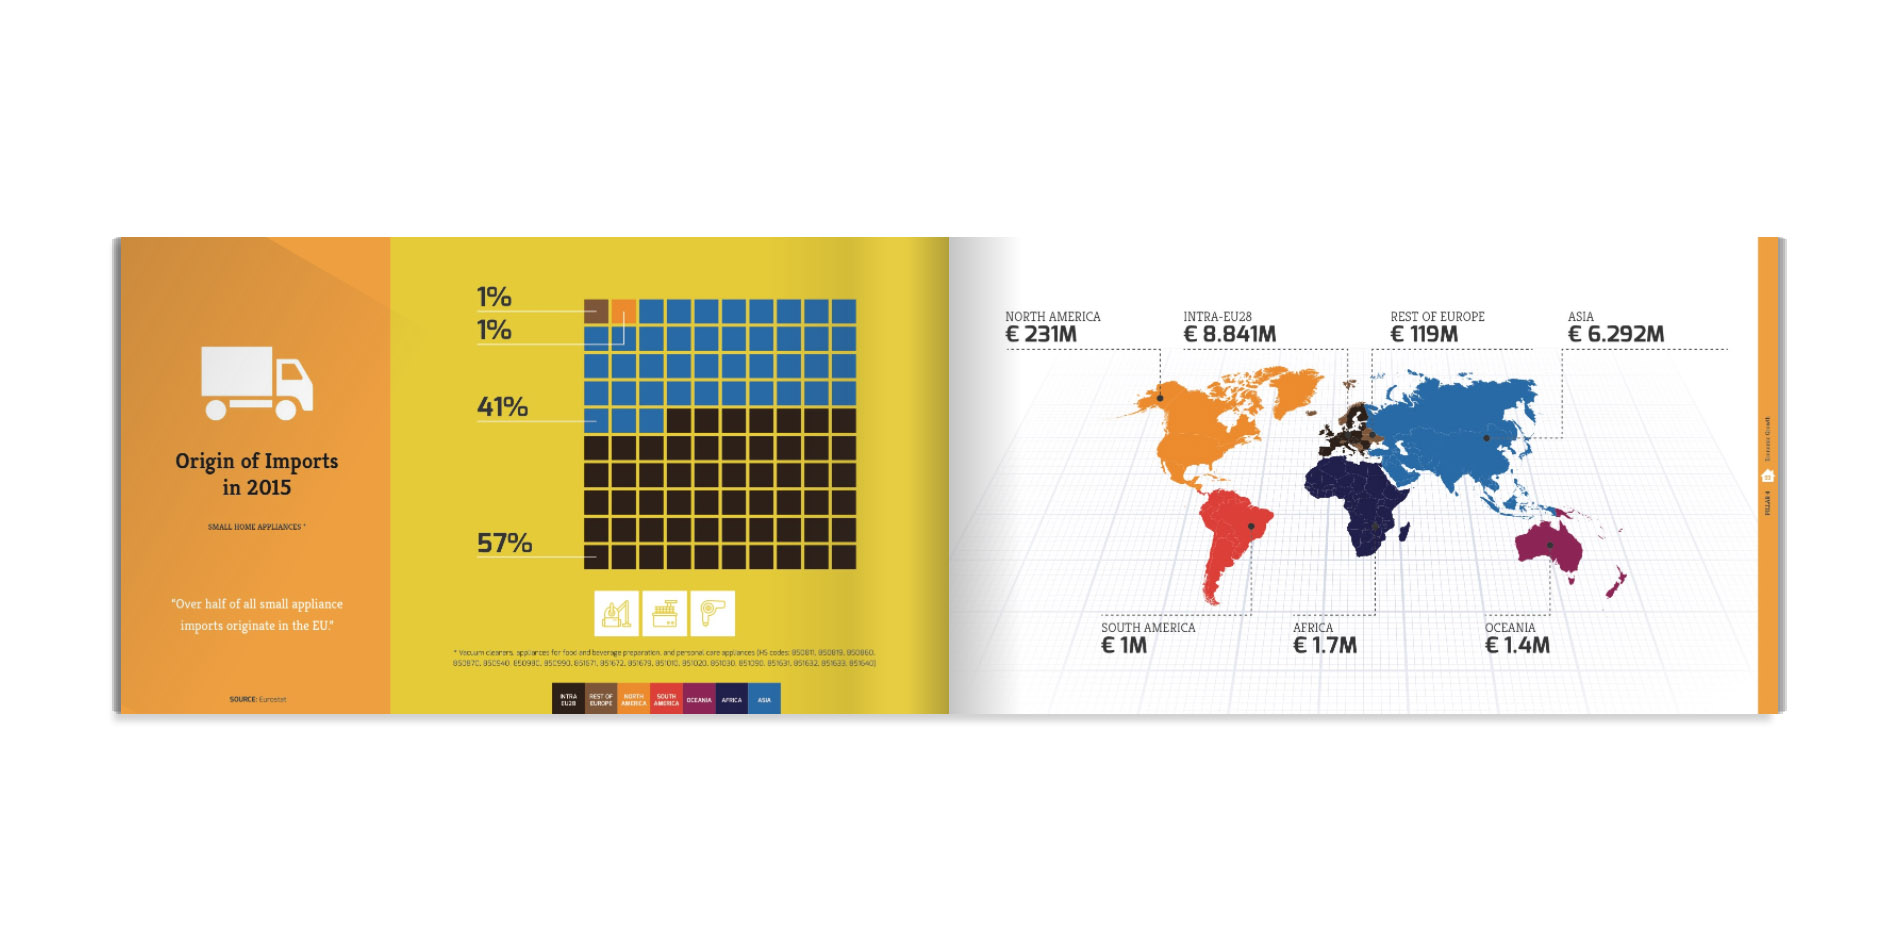 ceced_annual_report_design_infographic_3